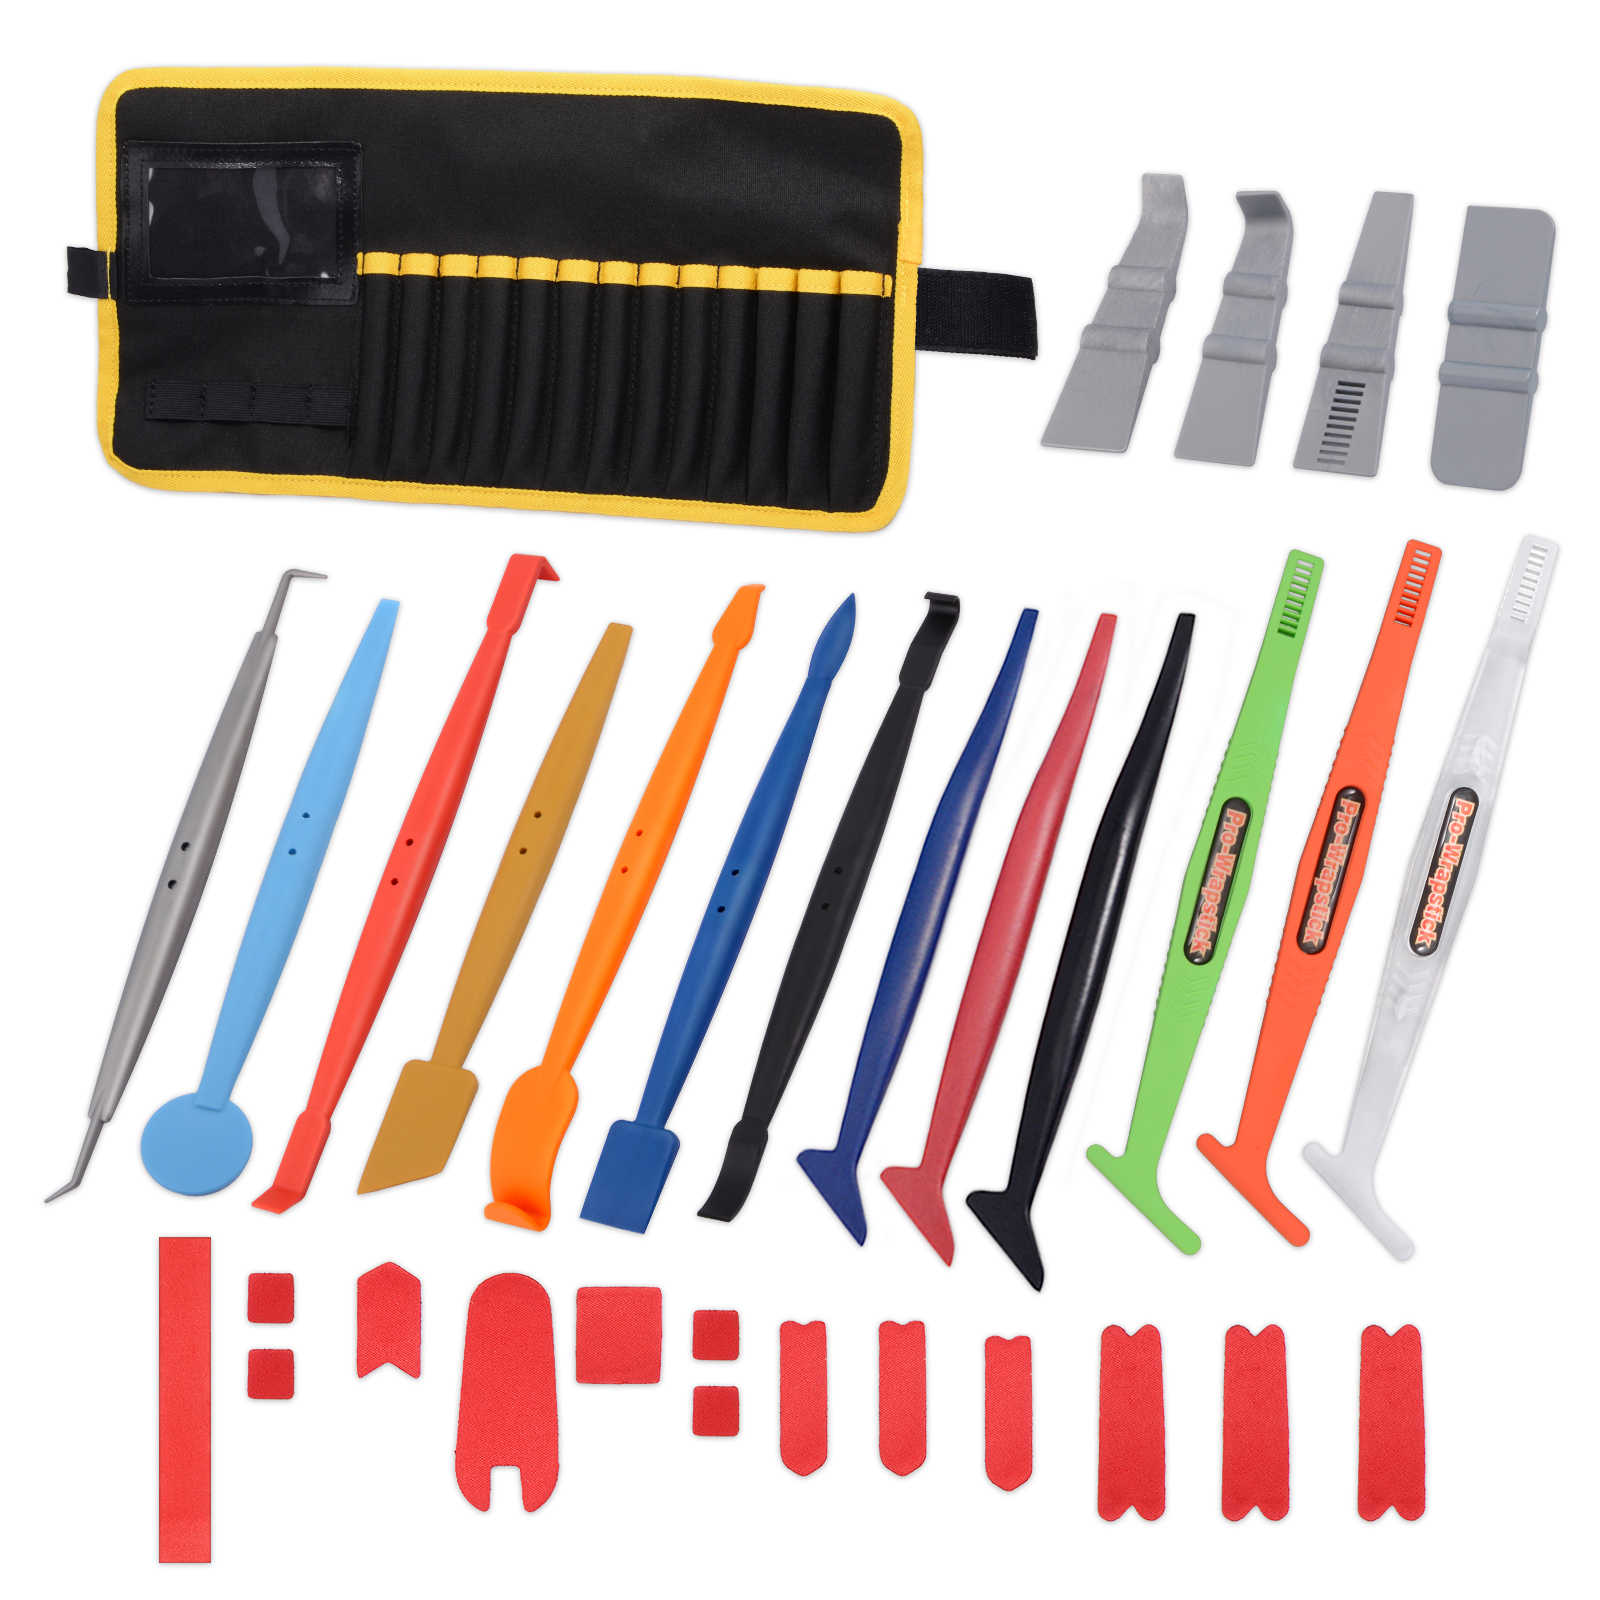 FOSHIO 32pcs/Kit Vinyl Car Wrap Tools Bag Set Magnetic Sticker Stick Squeegee Scraper with Bag Carbon Fiber Film Wrapping Tools